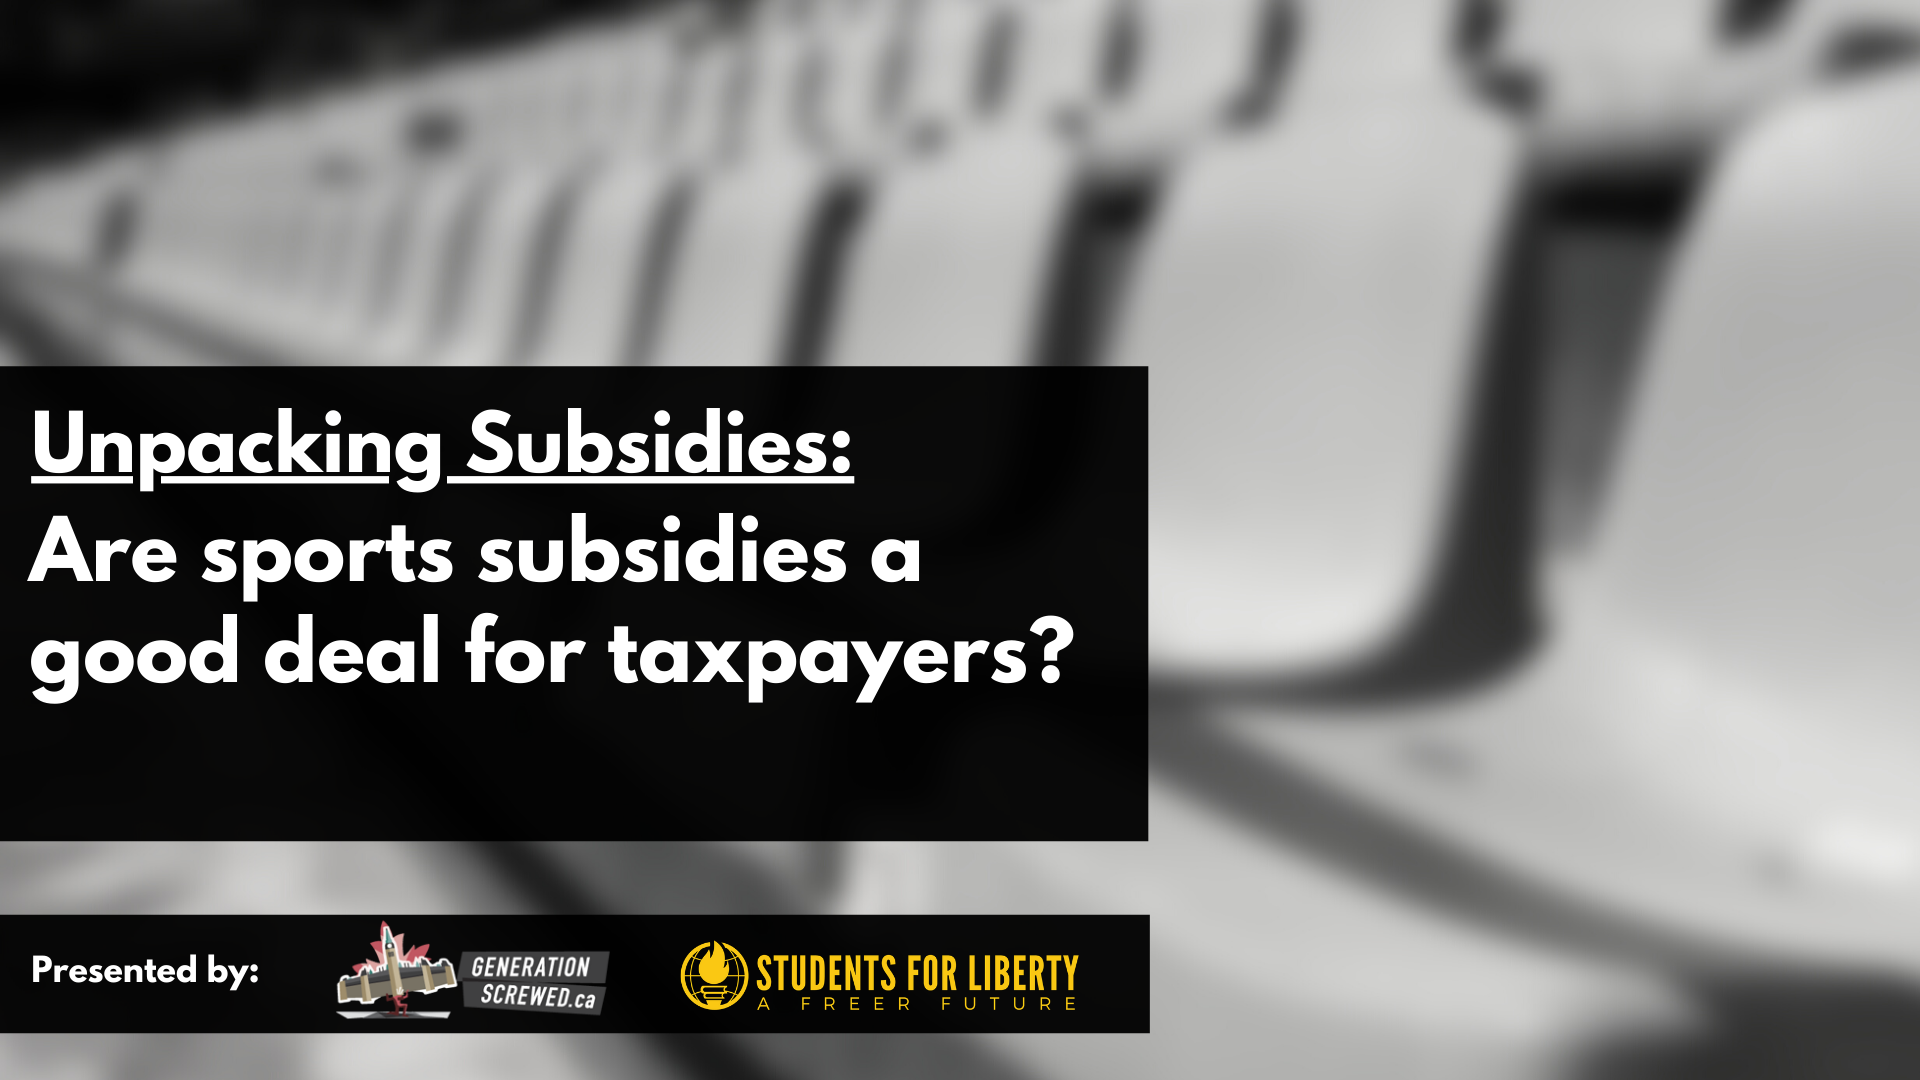 ICYMI: Unpacking Subsidies… Are big sports subsidies a good deal for taxpayers?